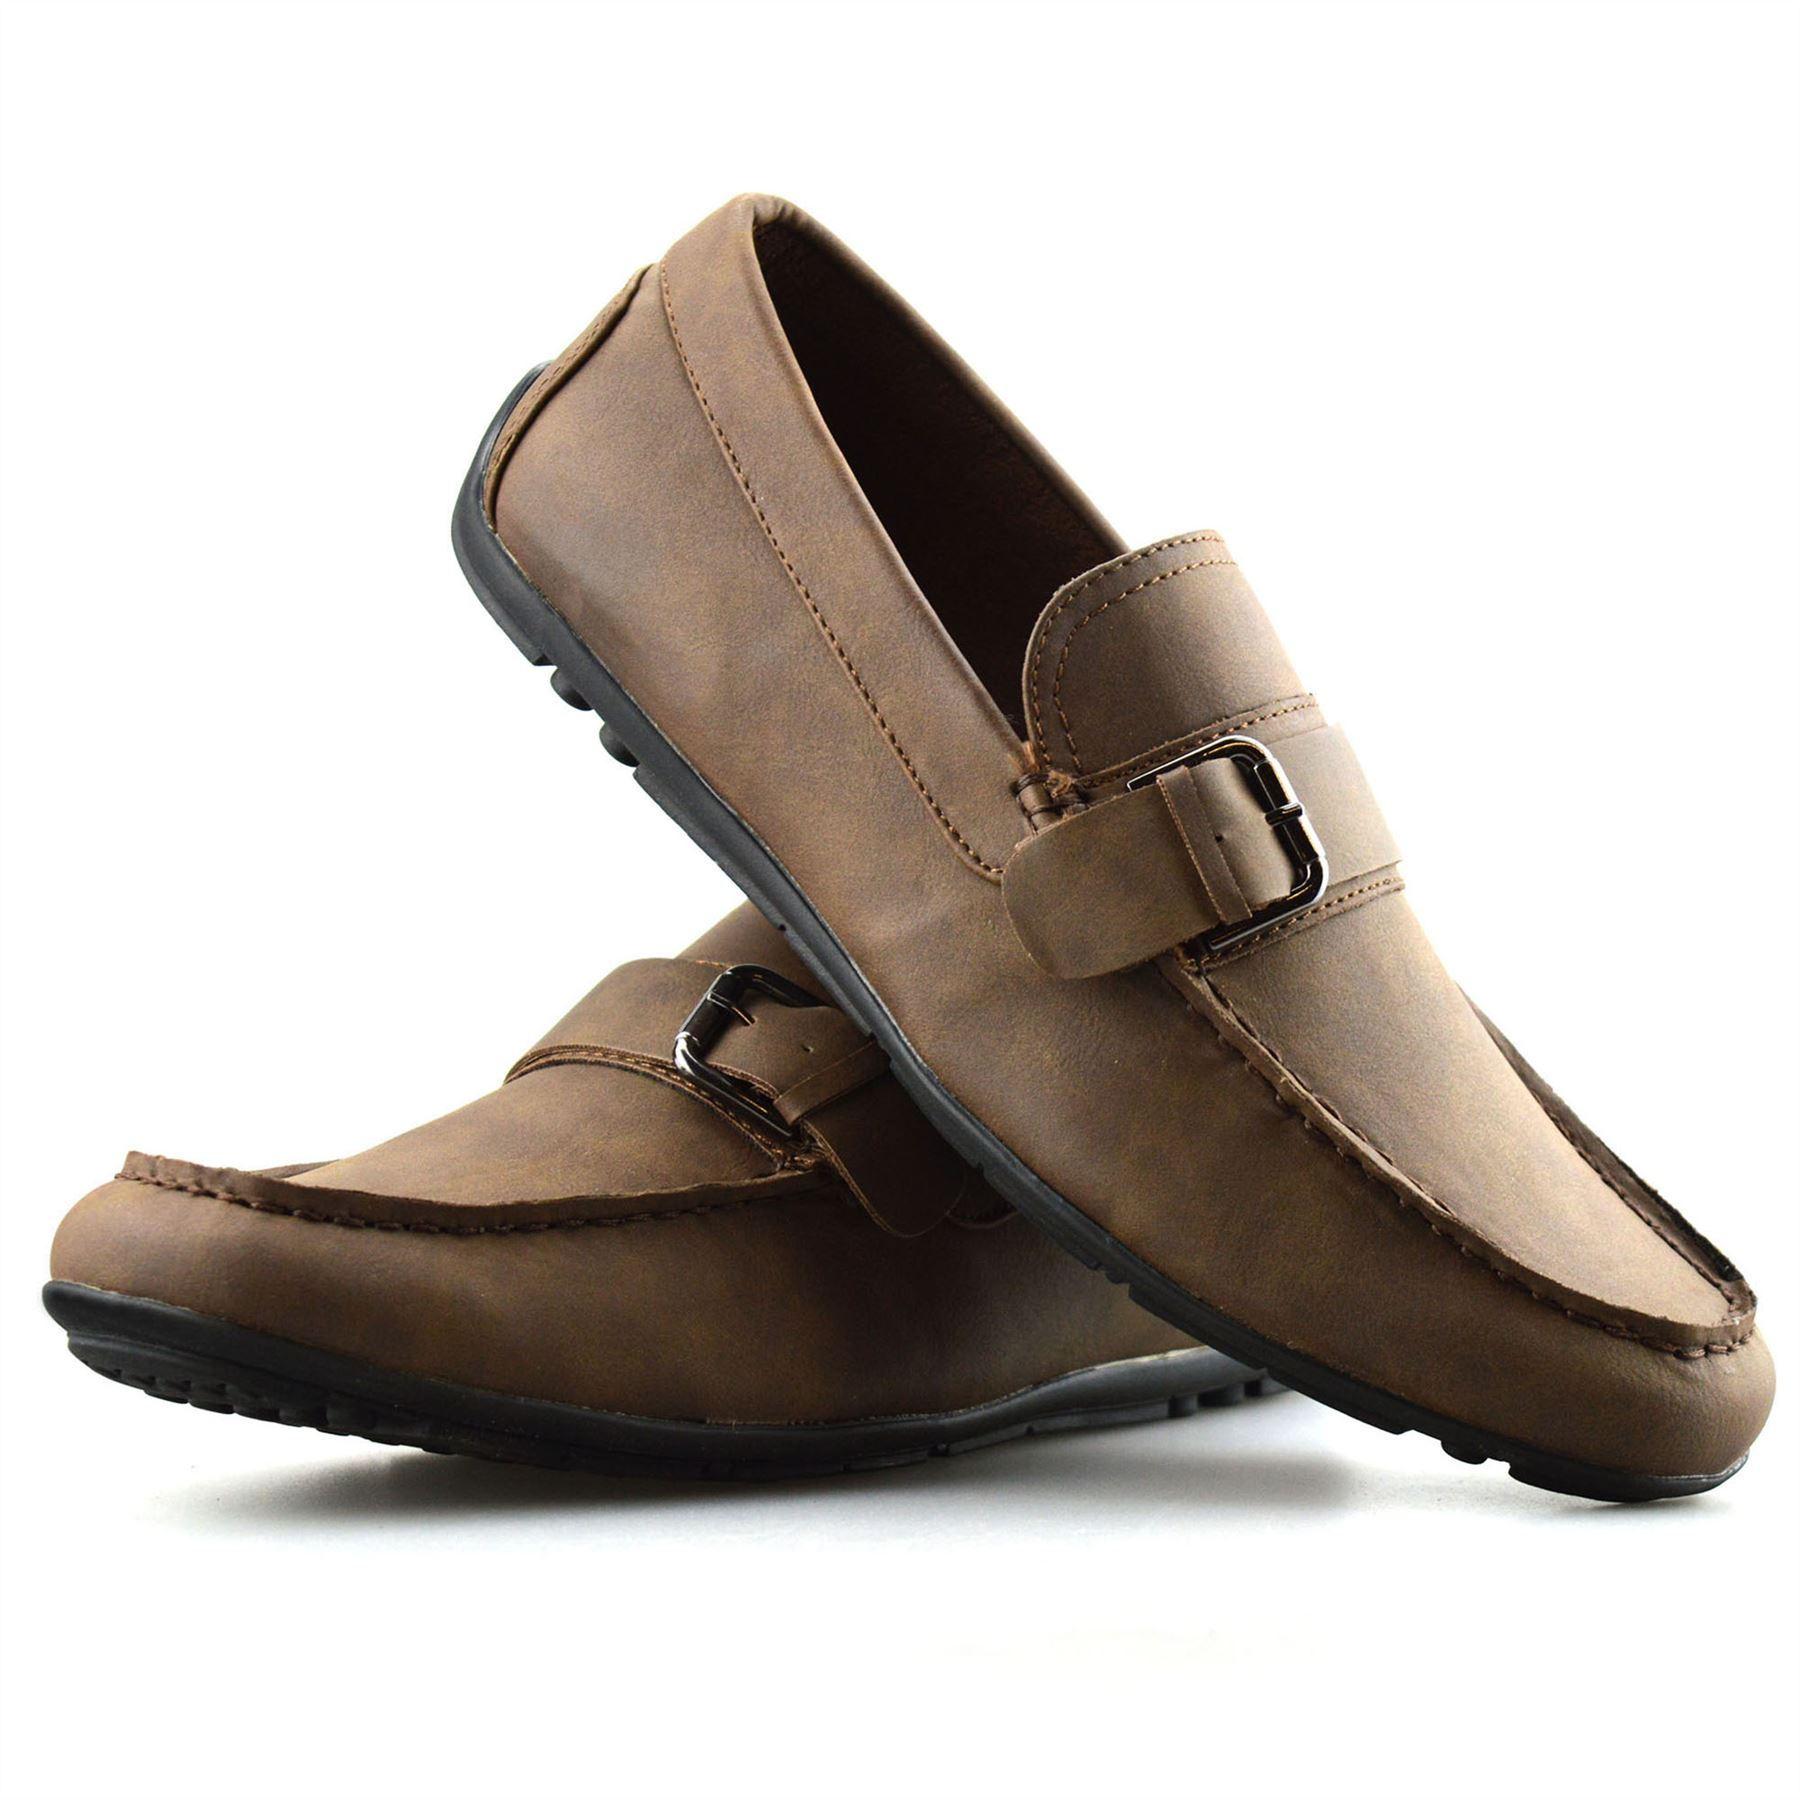 Mens-New-Slip-On-Boat-Deck-Casual-Mocassin-Designer-Loafers-Driving-Shoes-Size thumbnail 20